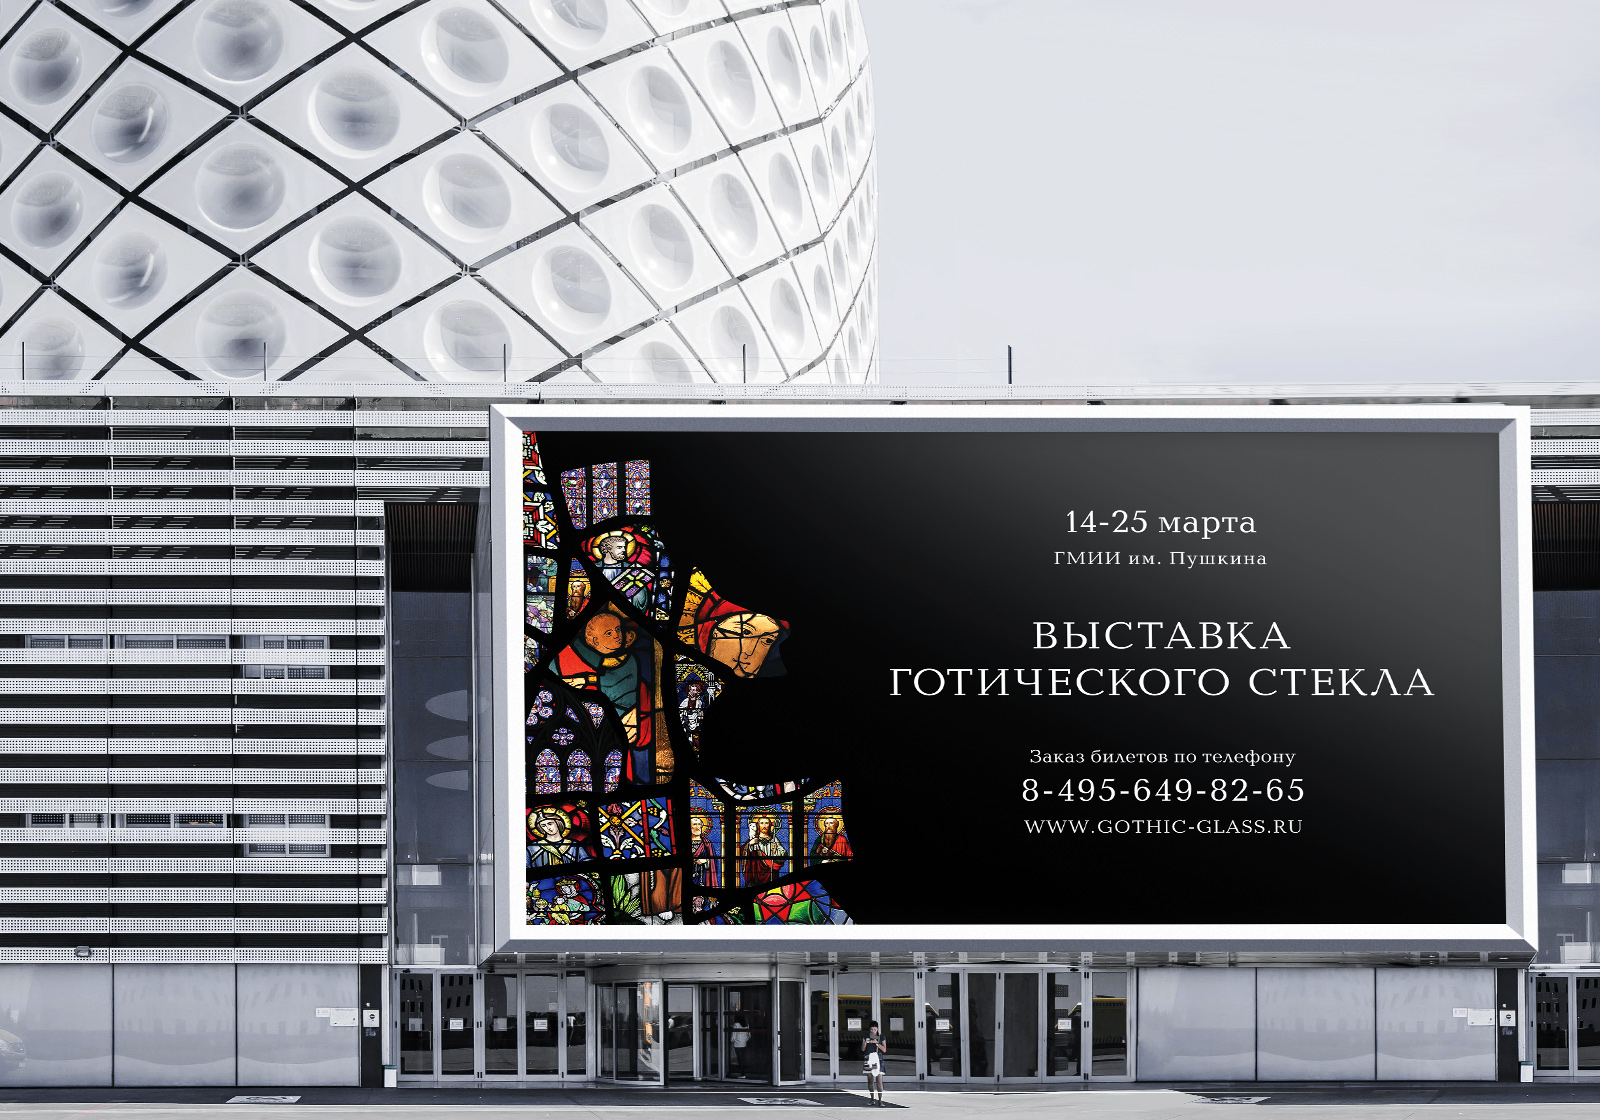 Exhibition of gothic glass